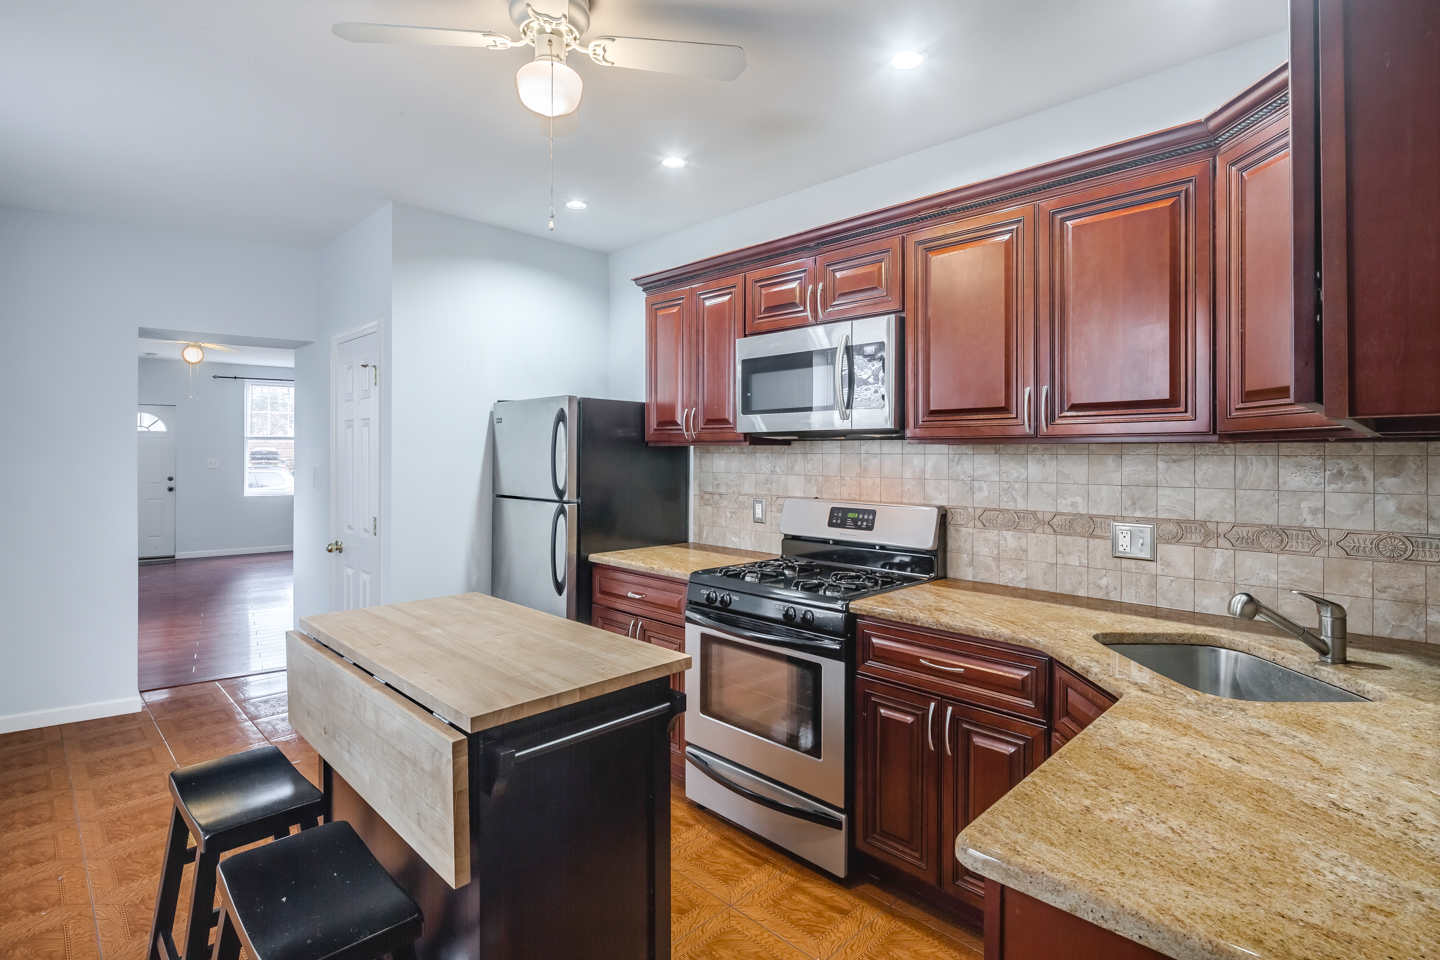 Rented | 1835 Sepviva Street - Fishtown, Philadelphia, PA, 19125